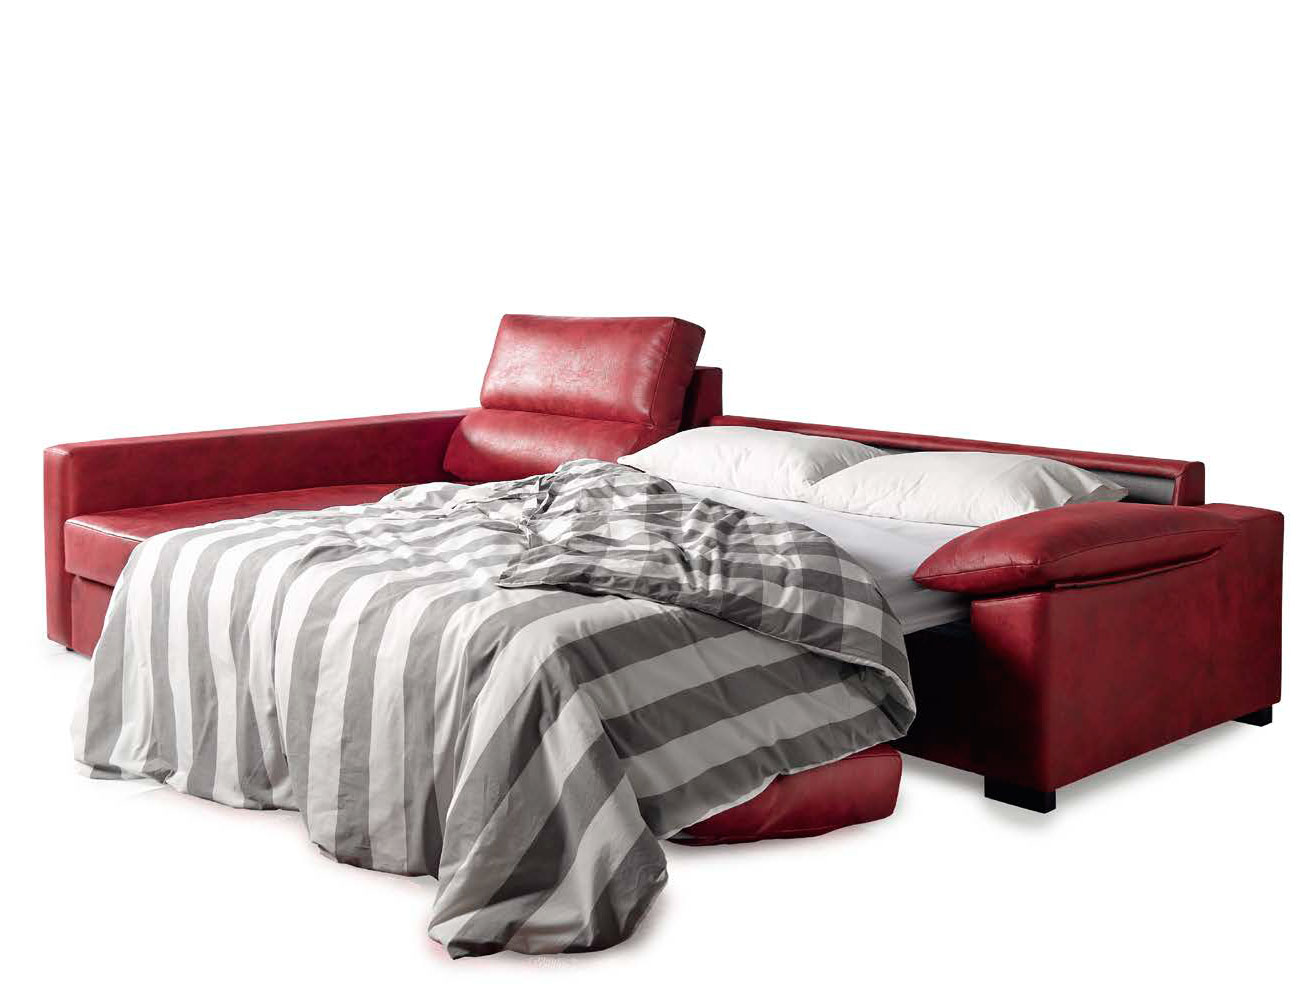 Sofa chaiselongue cama italiana leire rojo 21